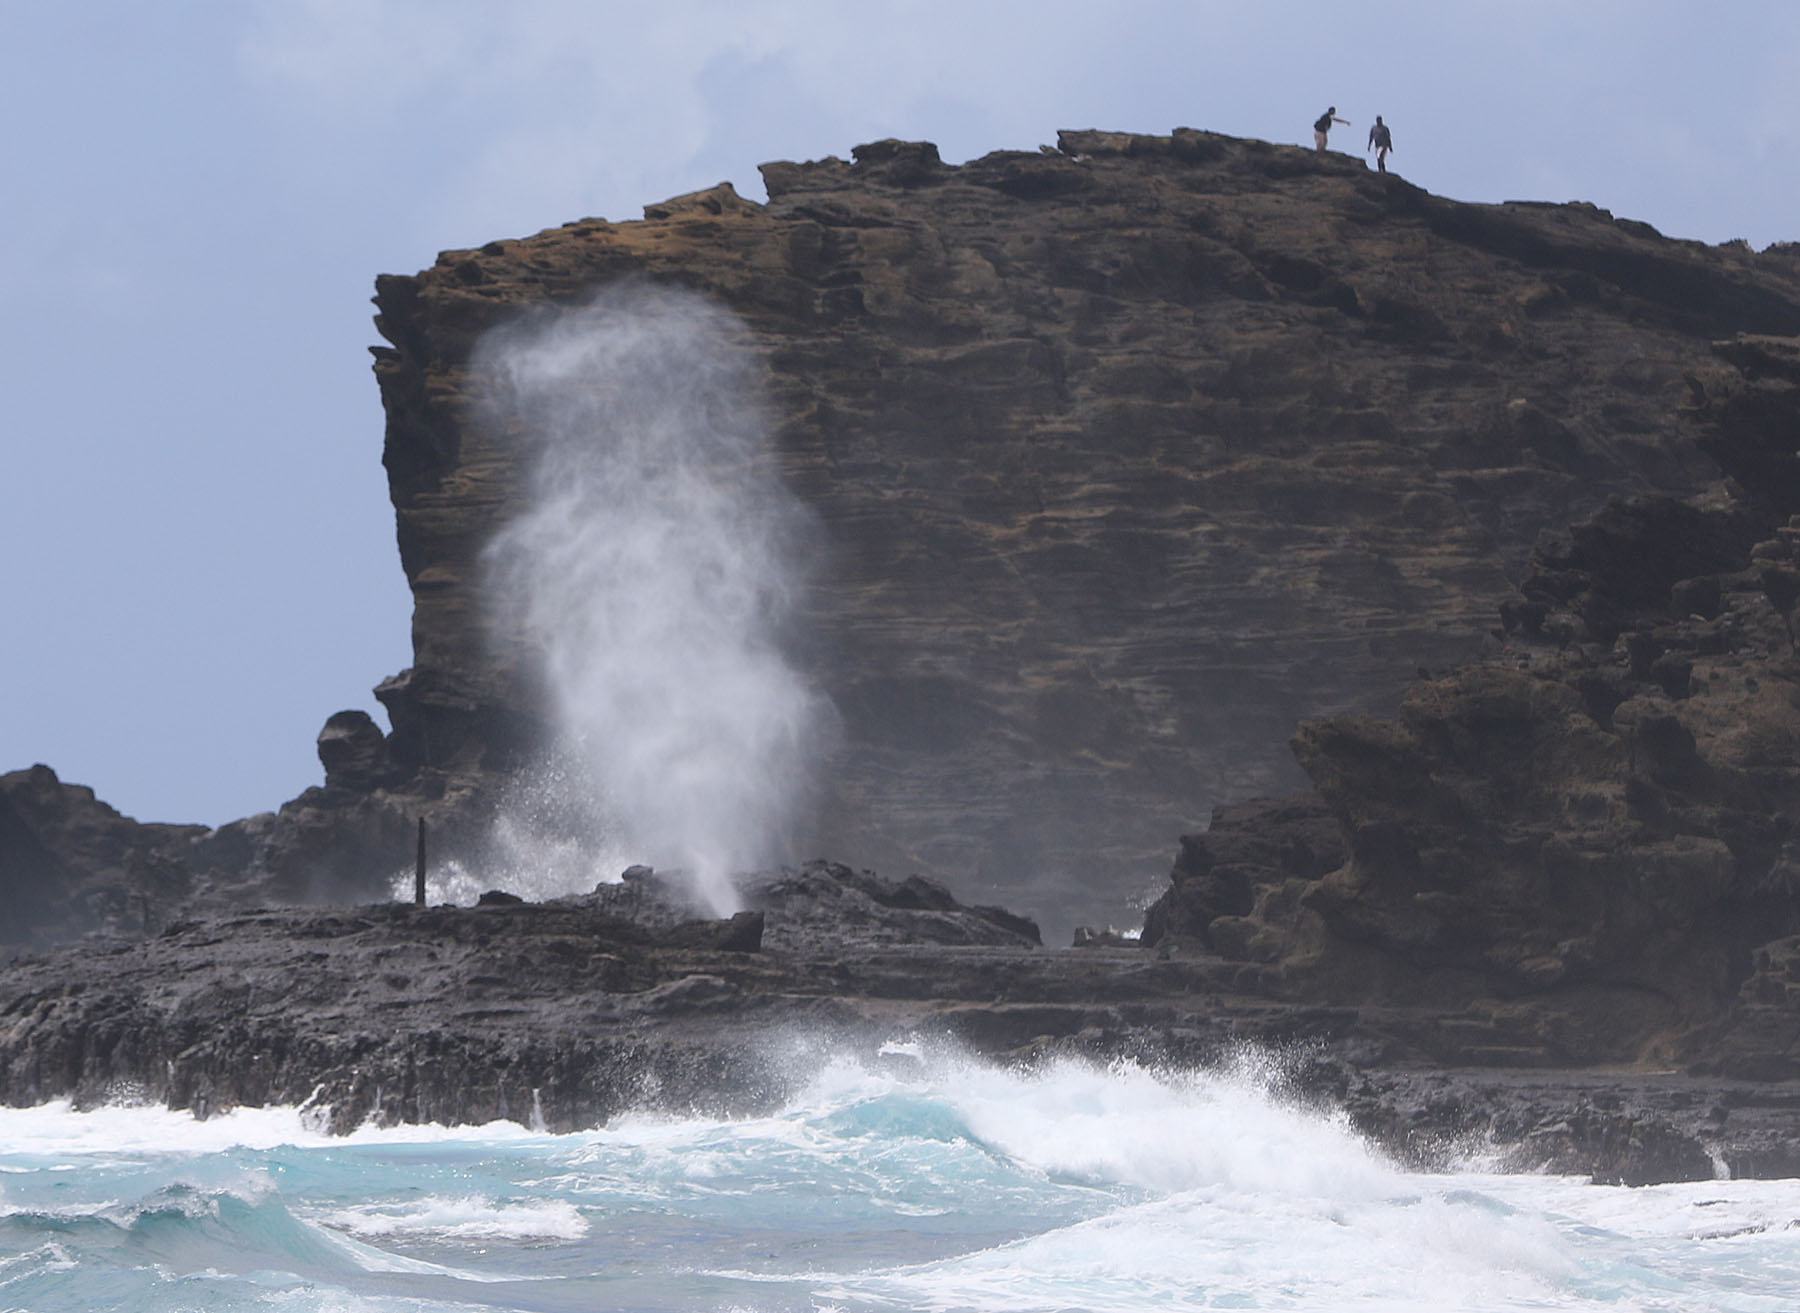 <p>Ignoring signs warning people to stay behind a fence, visitors climb the cliffs at Oahu&#8217;s Halona Blowhole.</p>